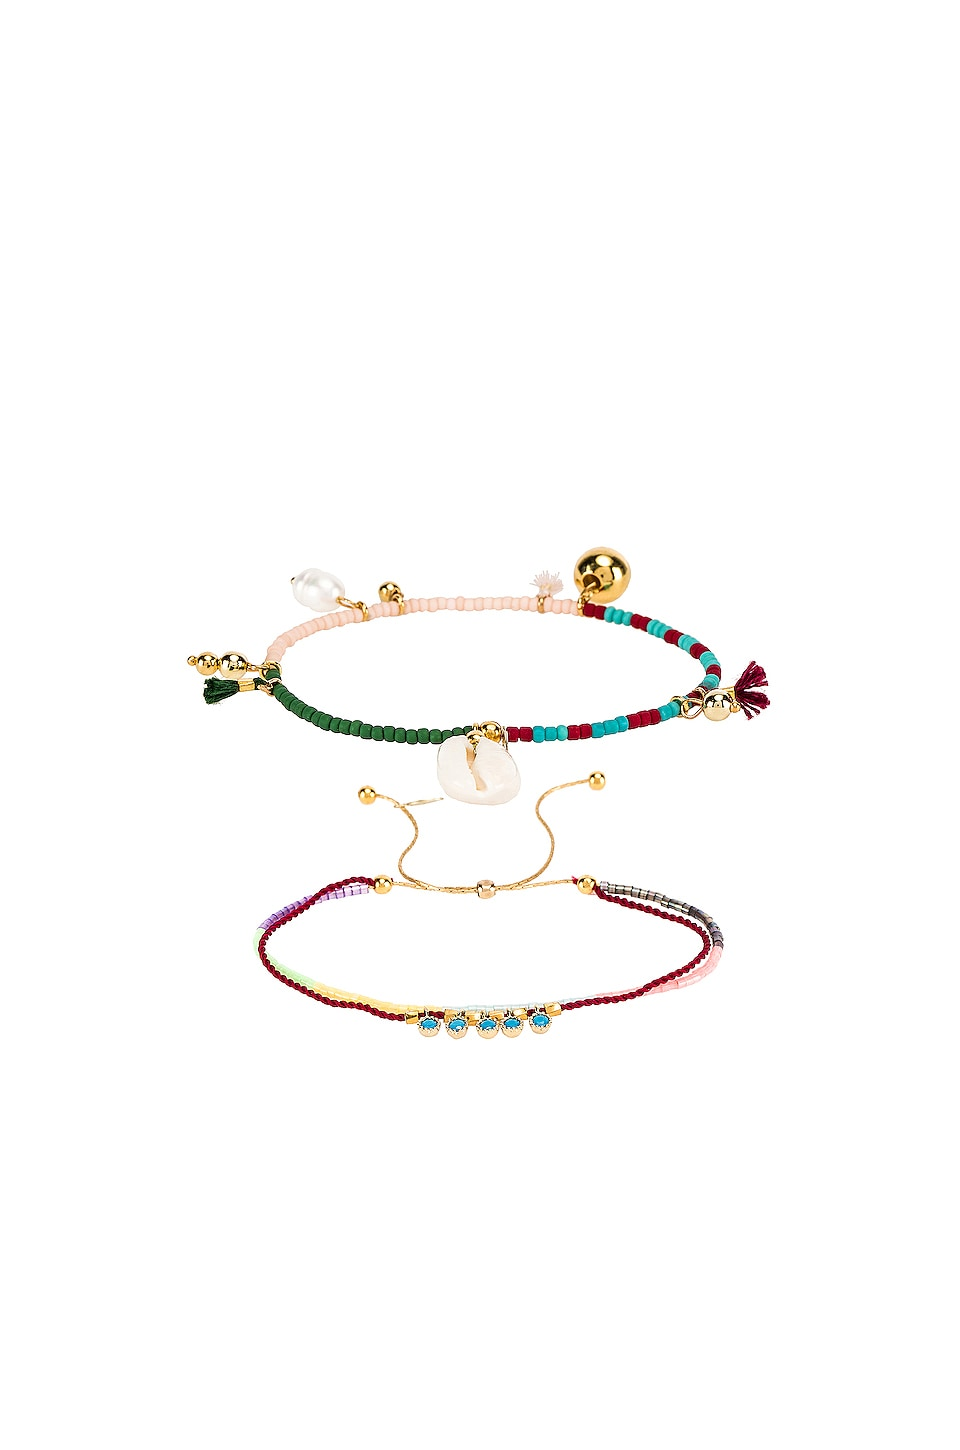 SHASHI Sealu and Peri Bracelet Set in Multi